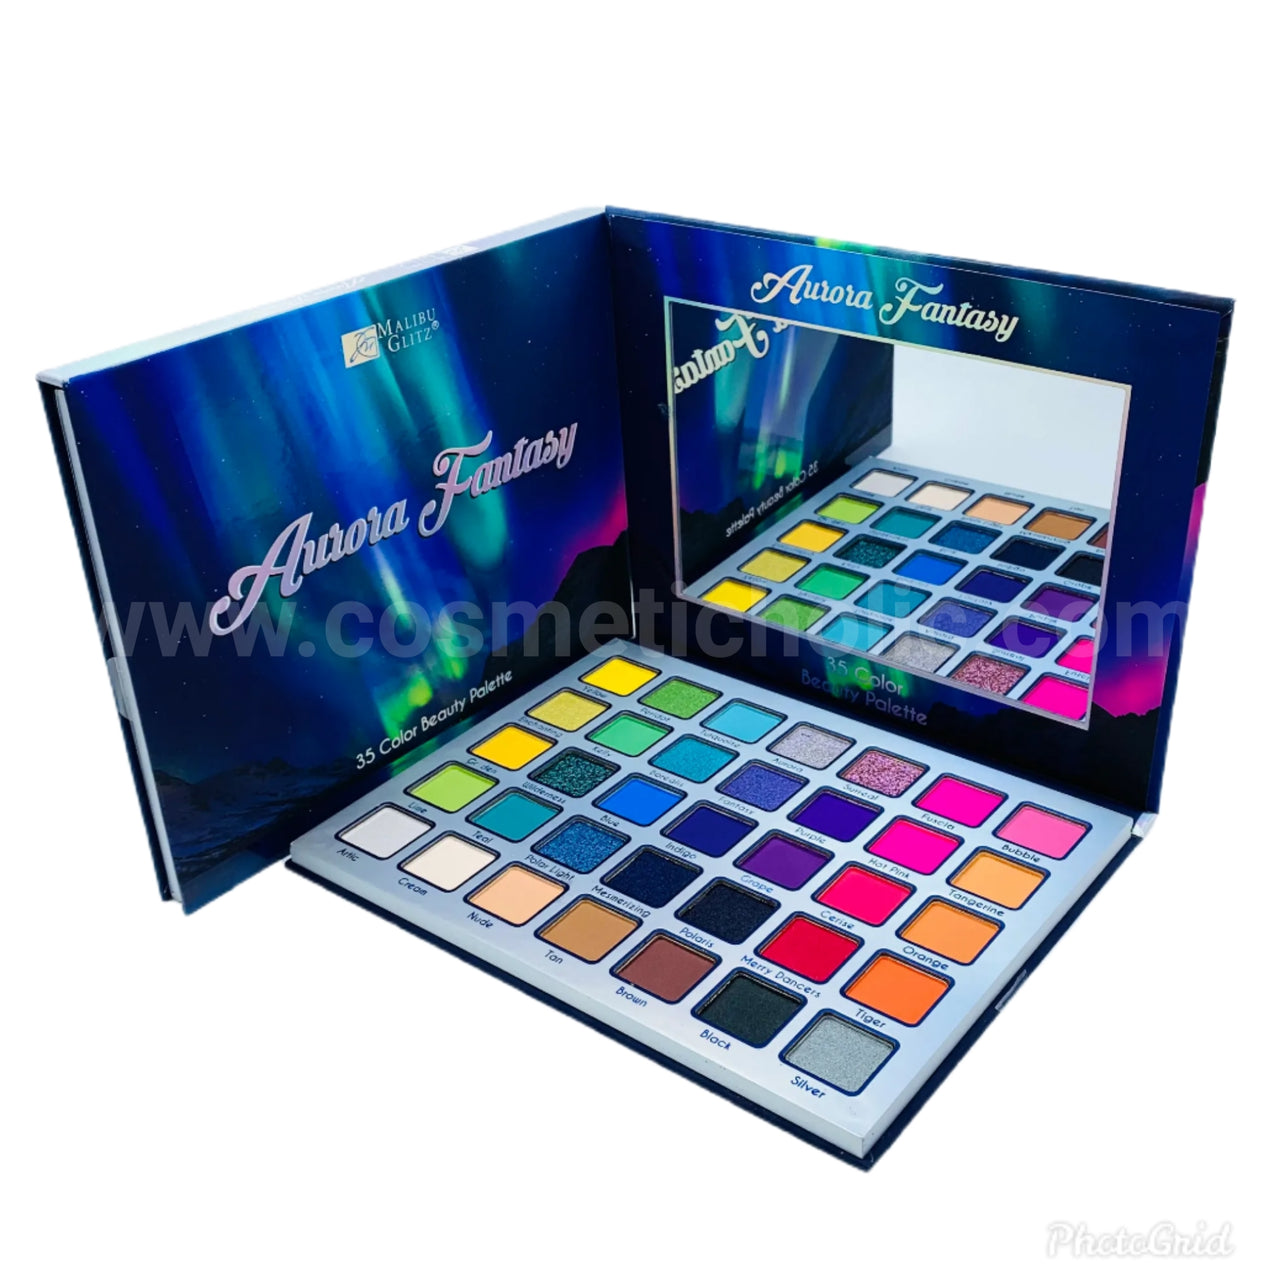 MG-683 : Aurora Fantasy 35 Color Beauty Palette